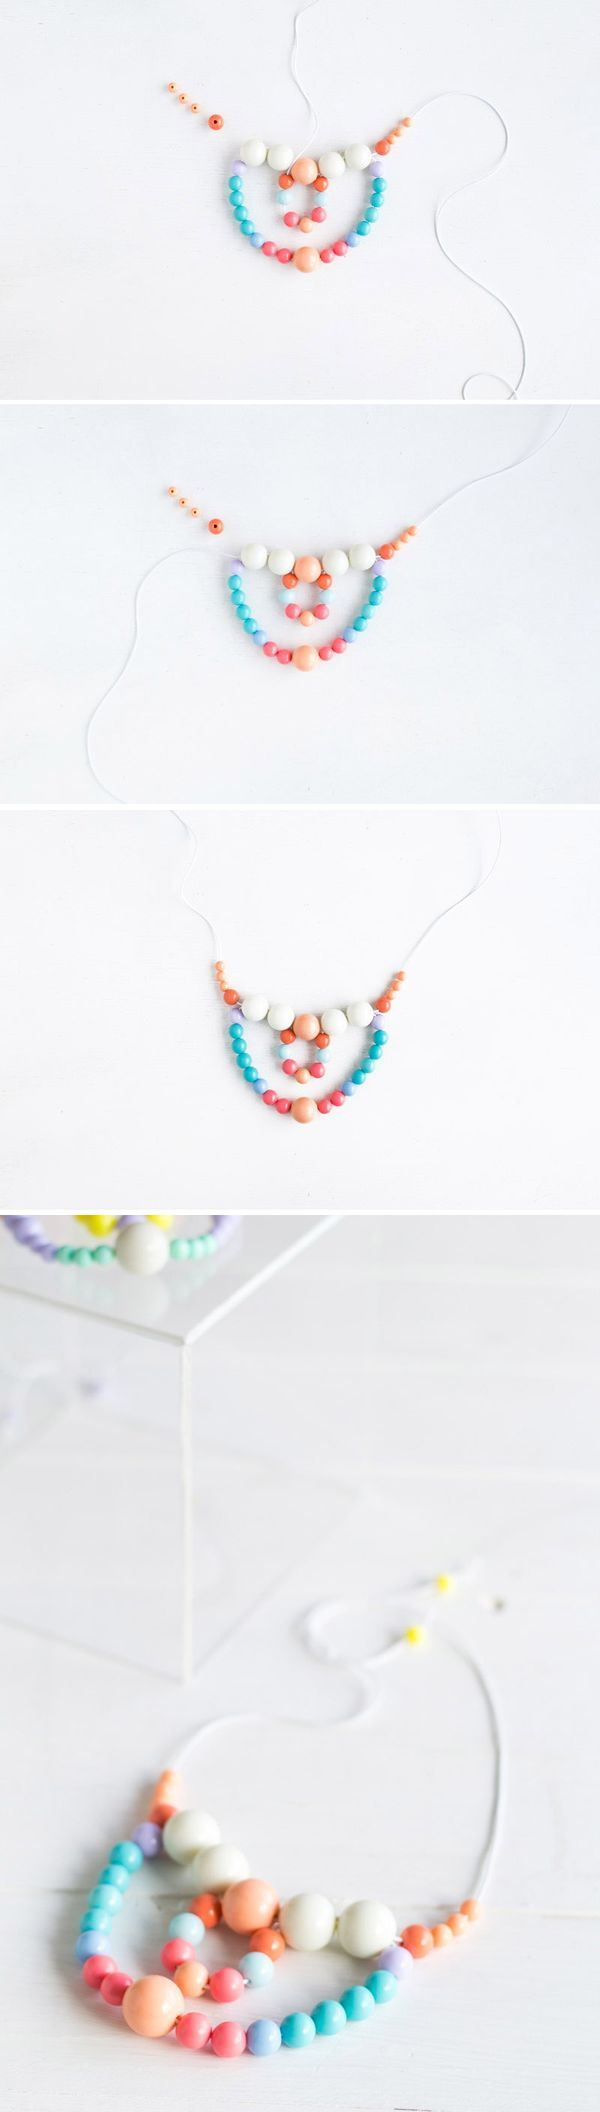 Beaded Necklace tutorial | Fall For DIY steps. A great jewelry gift for Christmas!